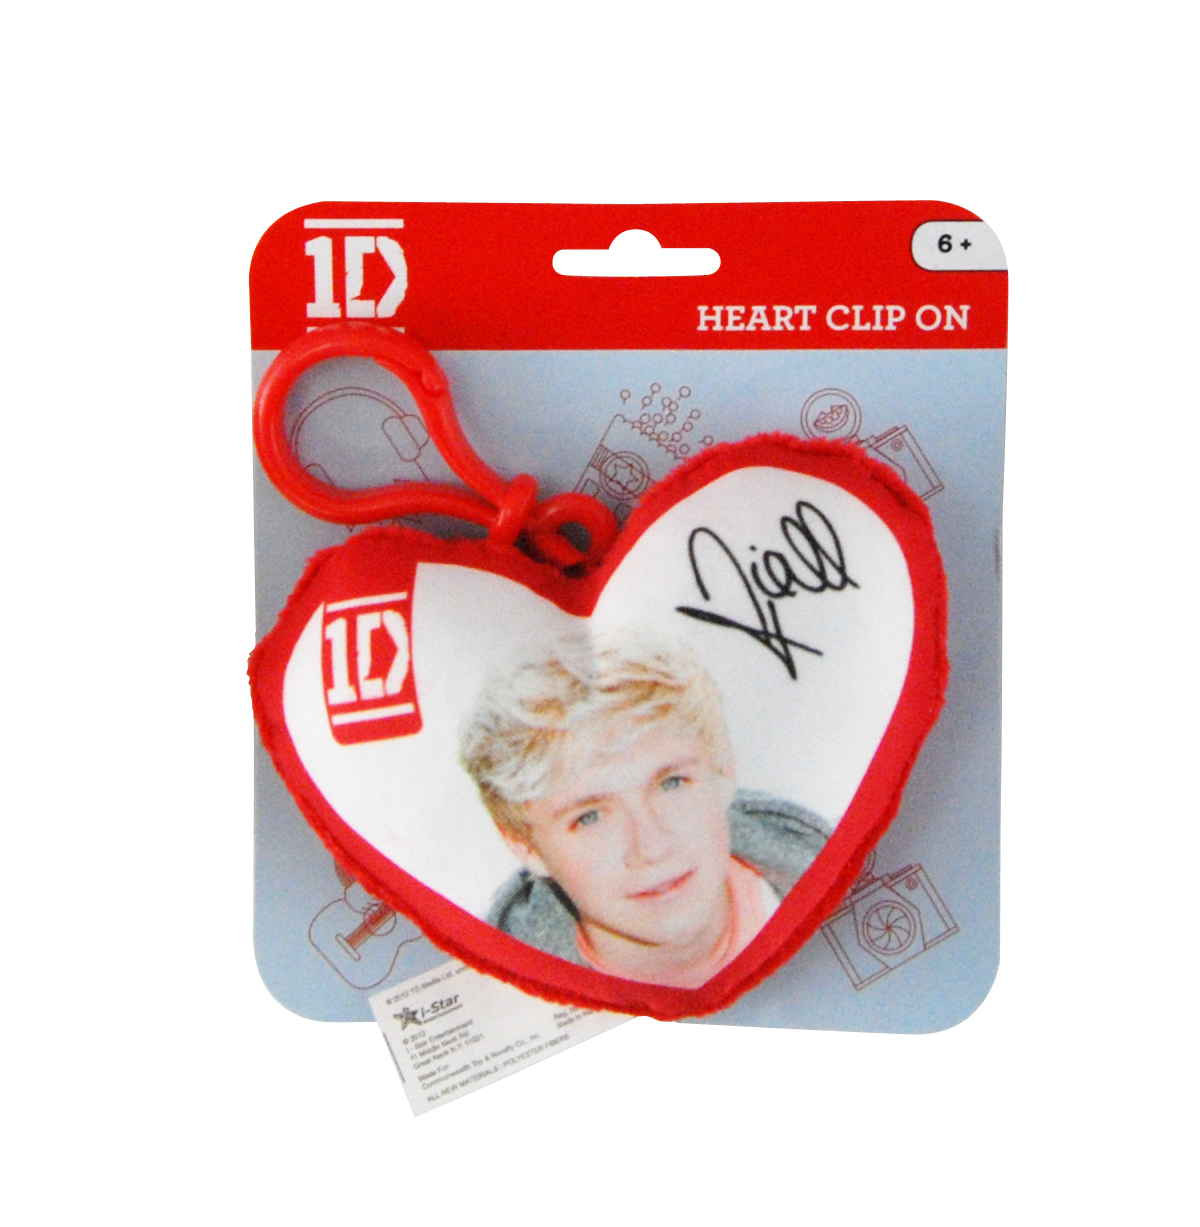 1D One Direction Plush Heart Backpack Clip On: Niall